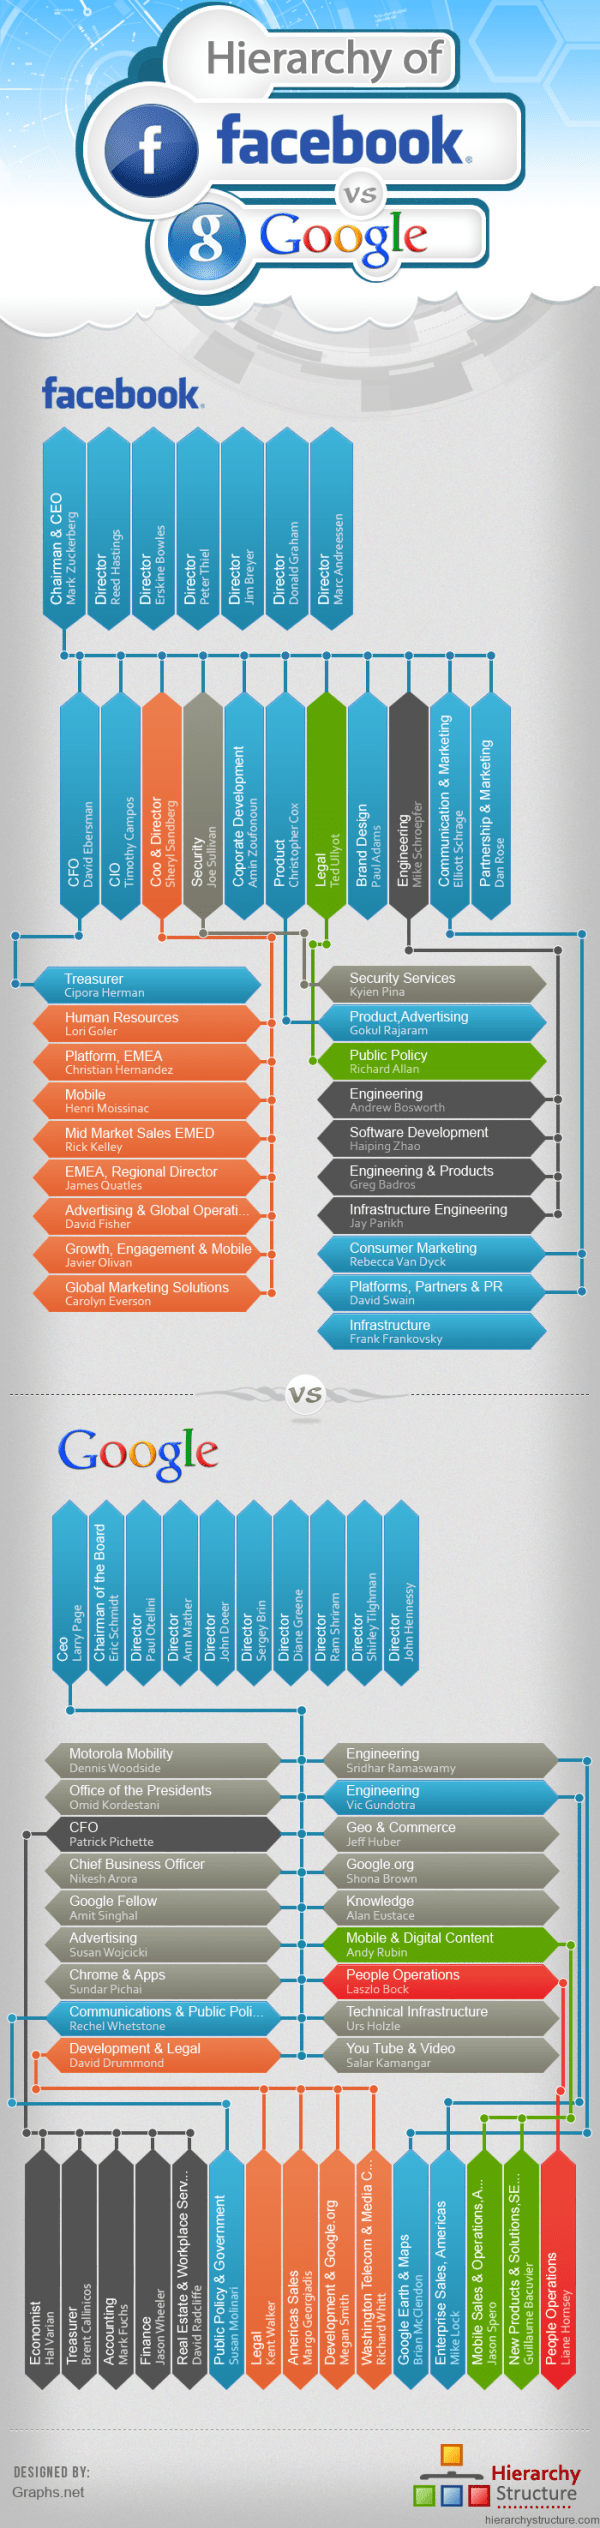 Hierarchy of Facebook vs Google